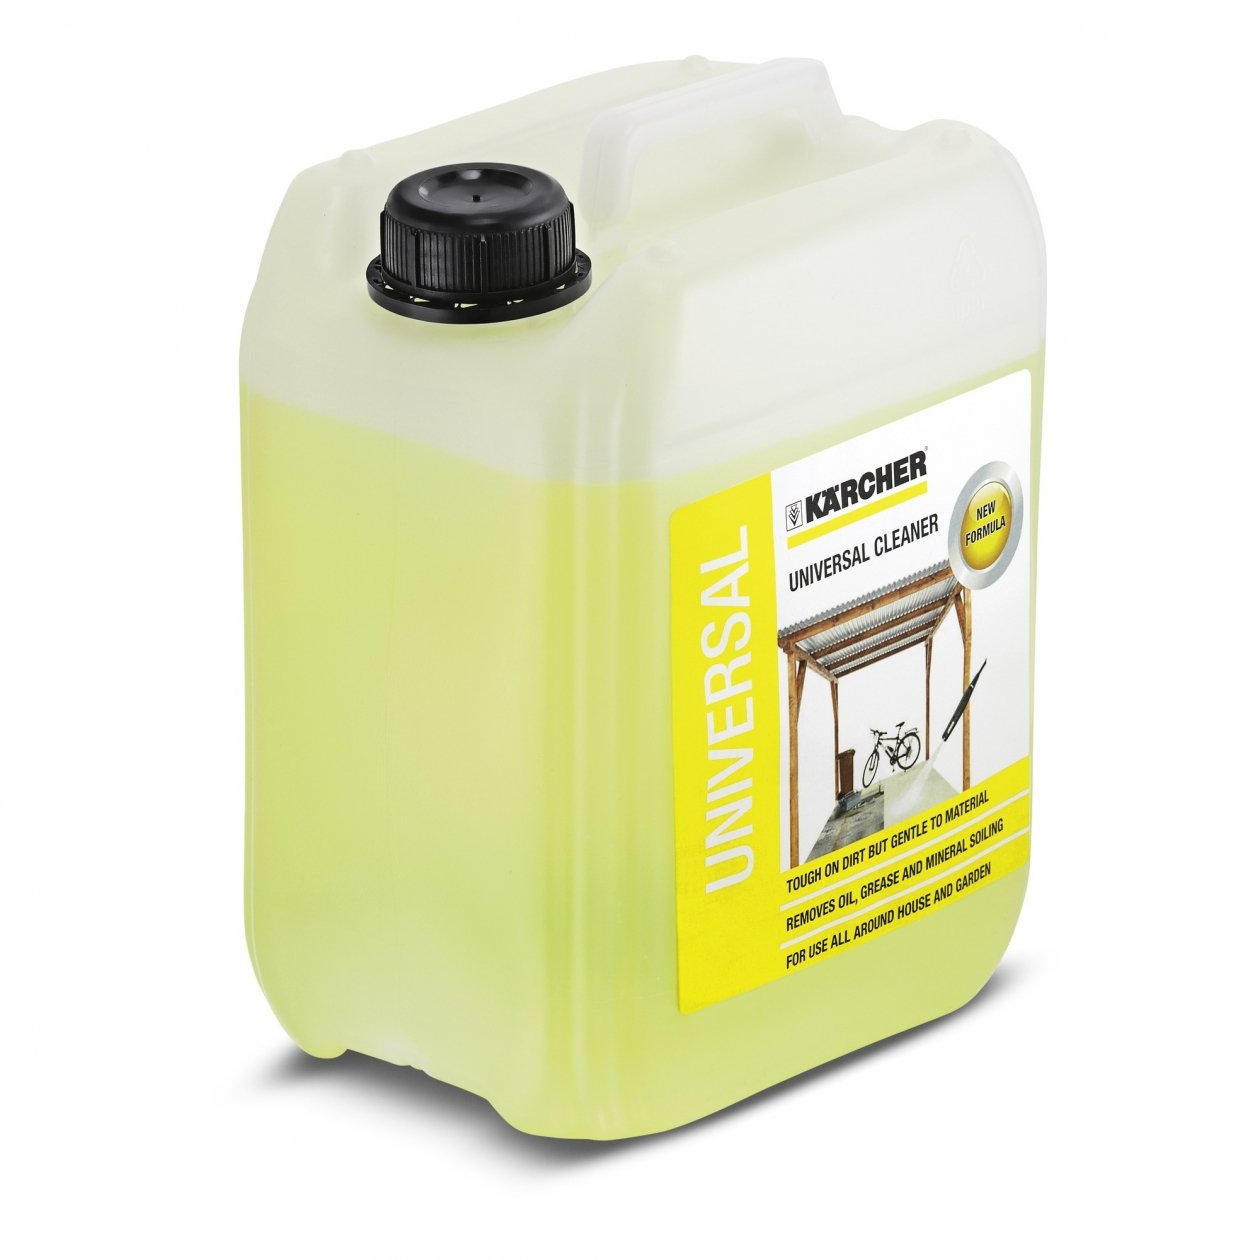 Kä rcher Wood cleaner 5000ml - Limpiador (5000 ml) Kärcher Wood Cleaner - 5L Canister